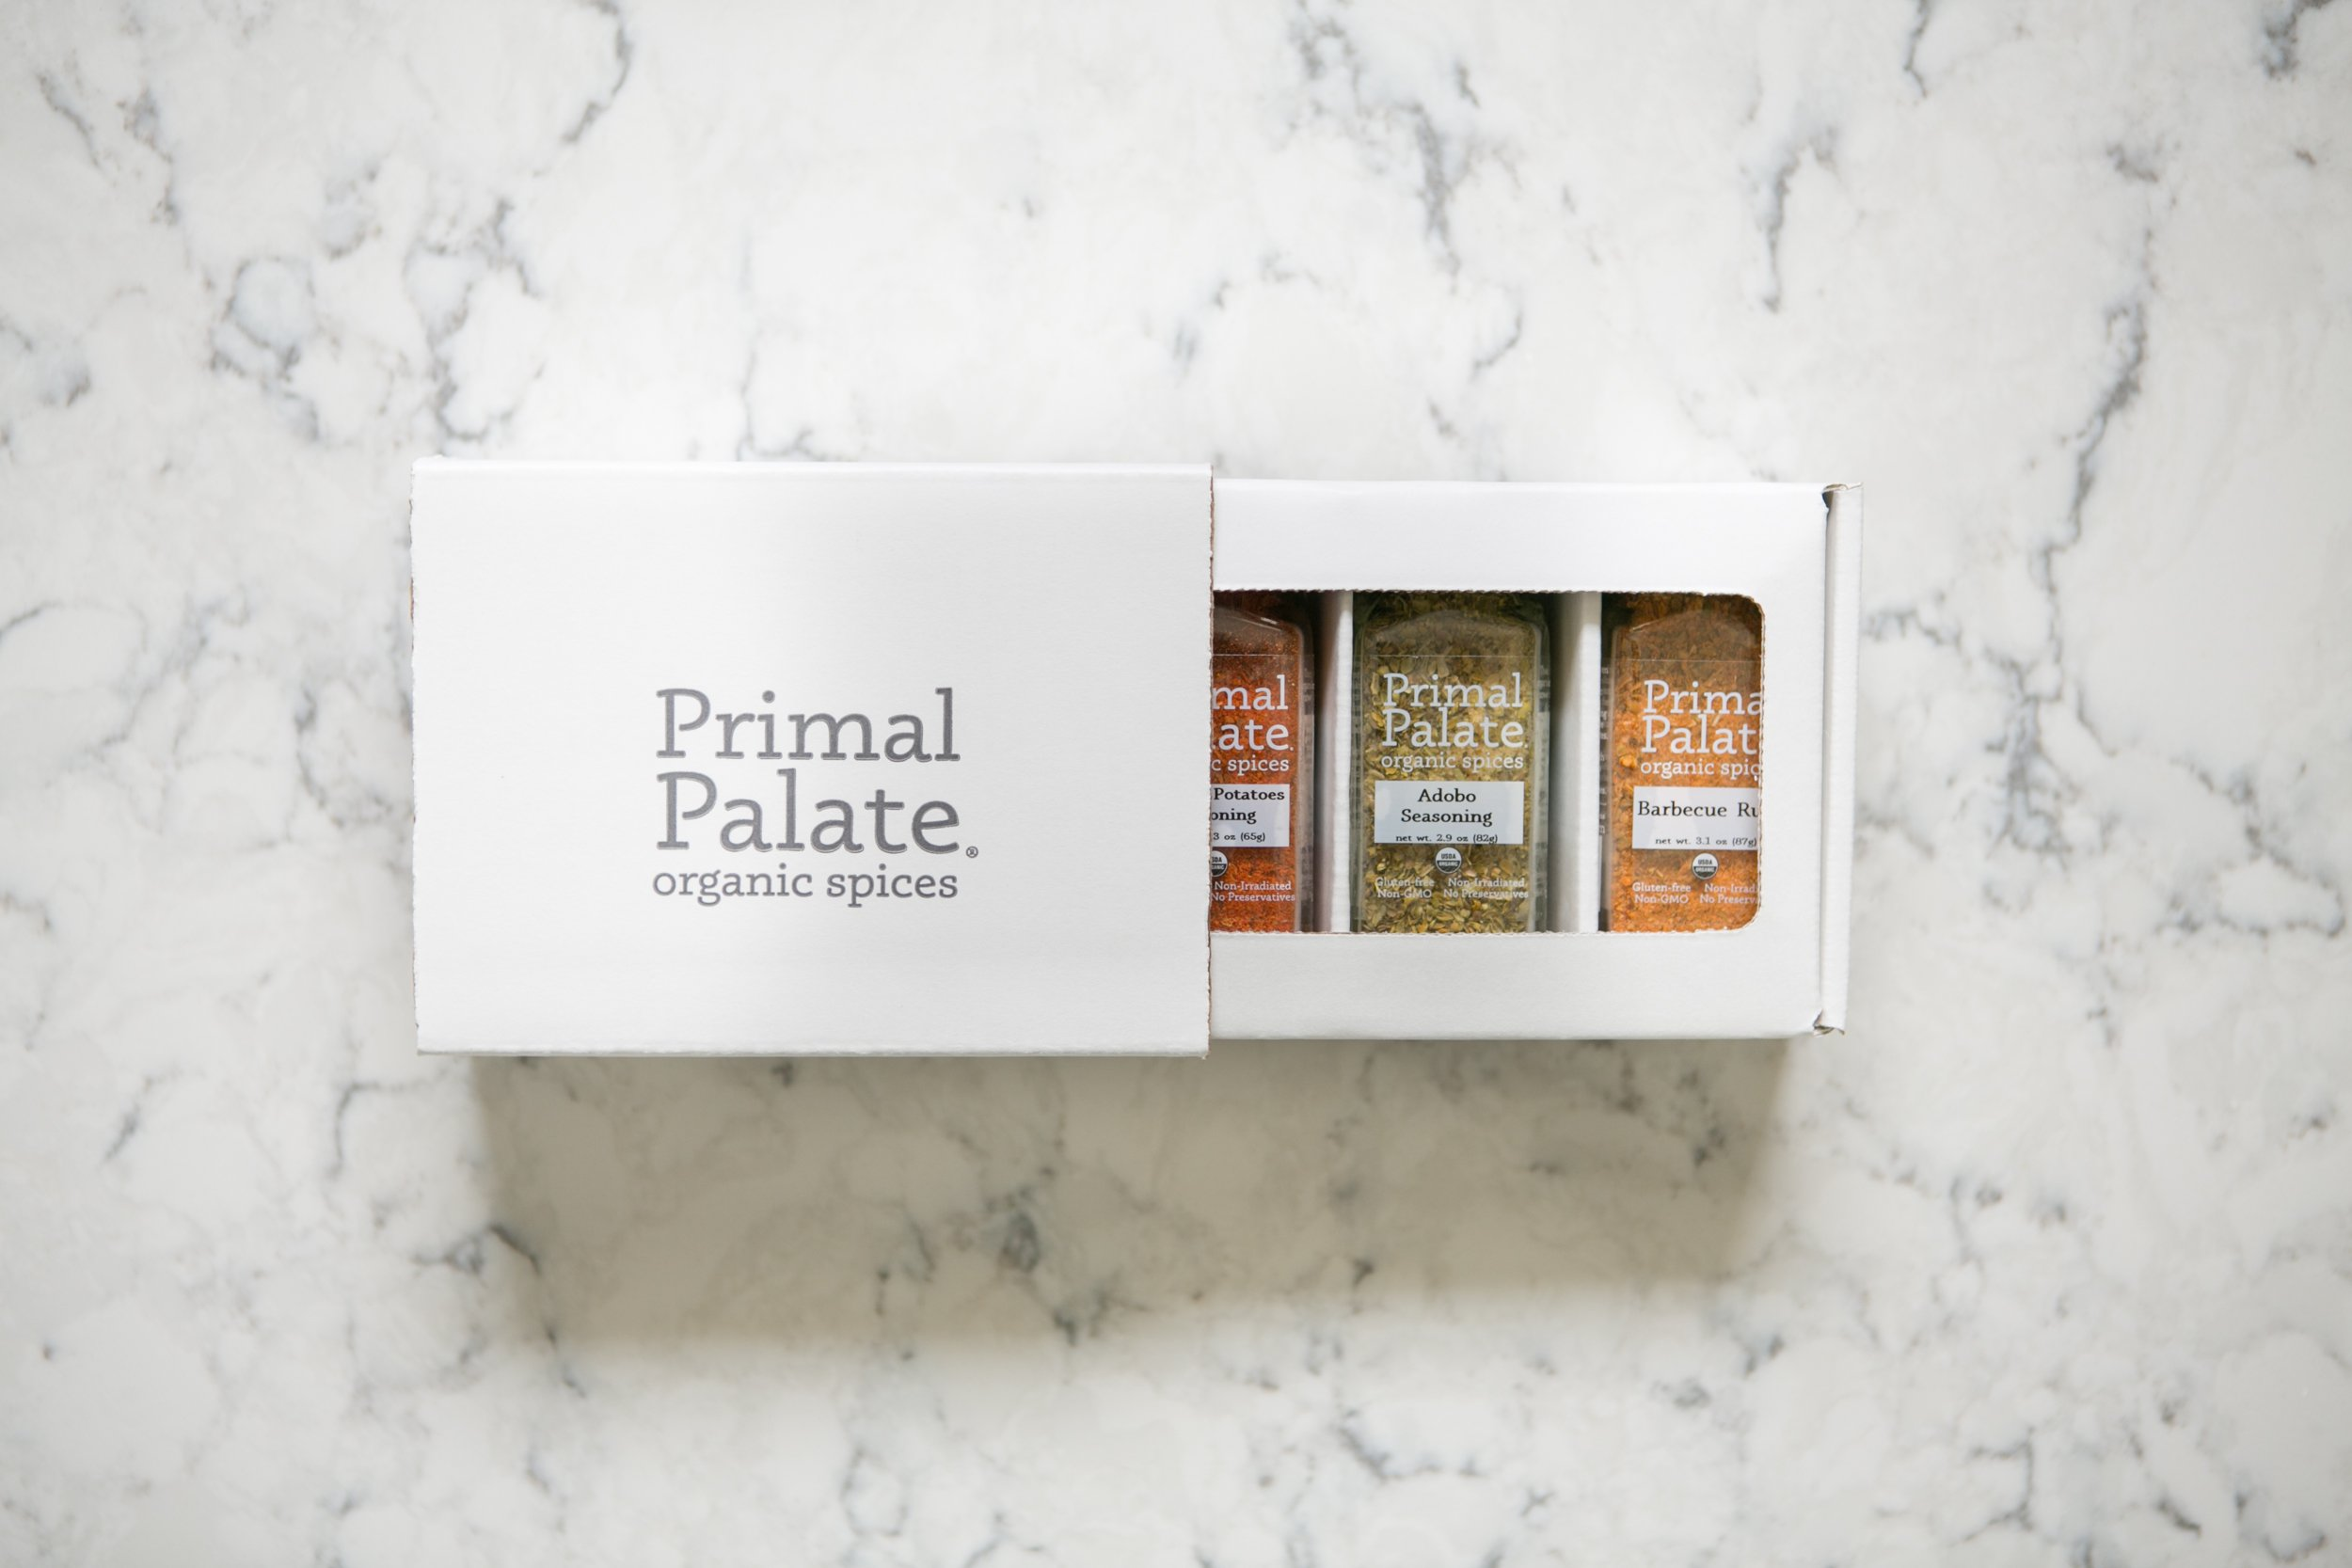 Primal Palate Organic Spices - Signature Blends 3-Bottle Gift Set by Primal Palate Organic Spices (Image #1)